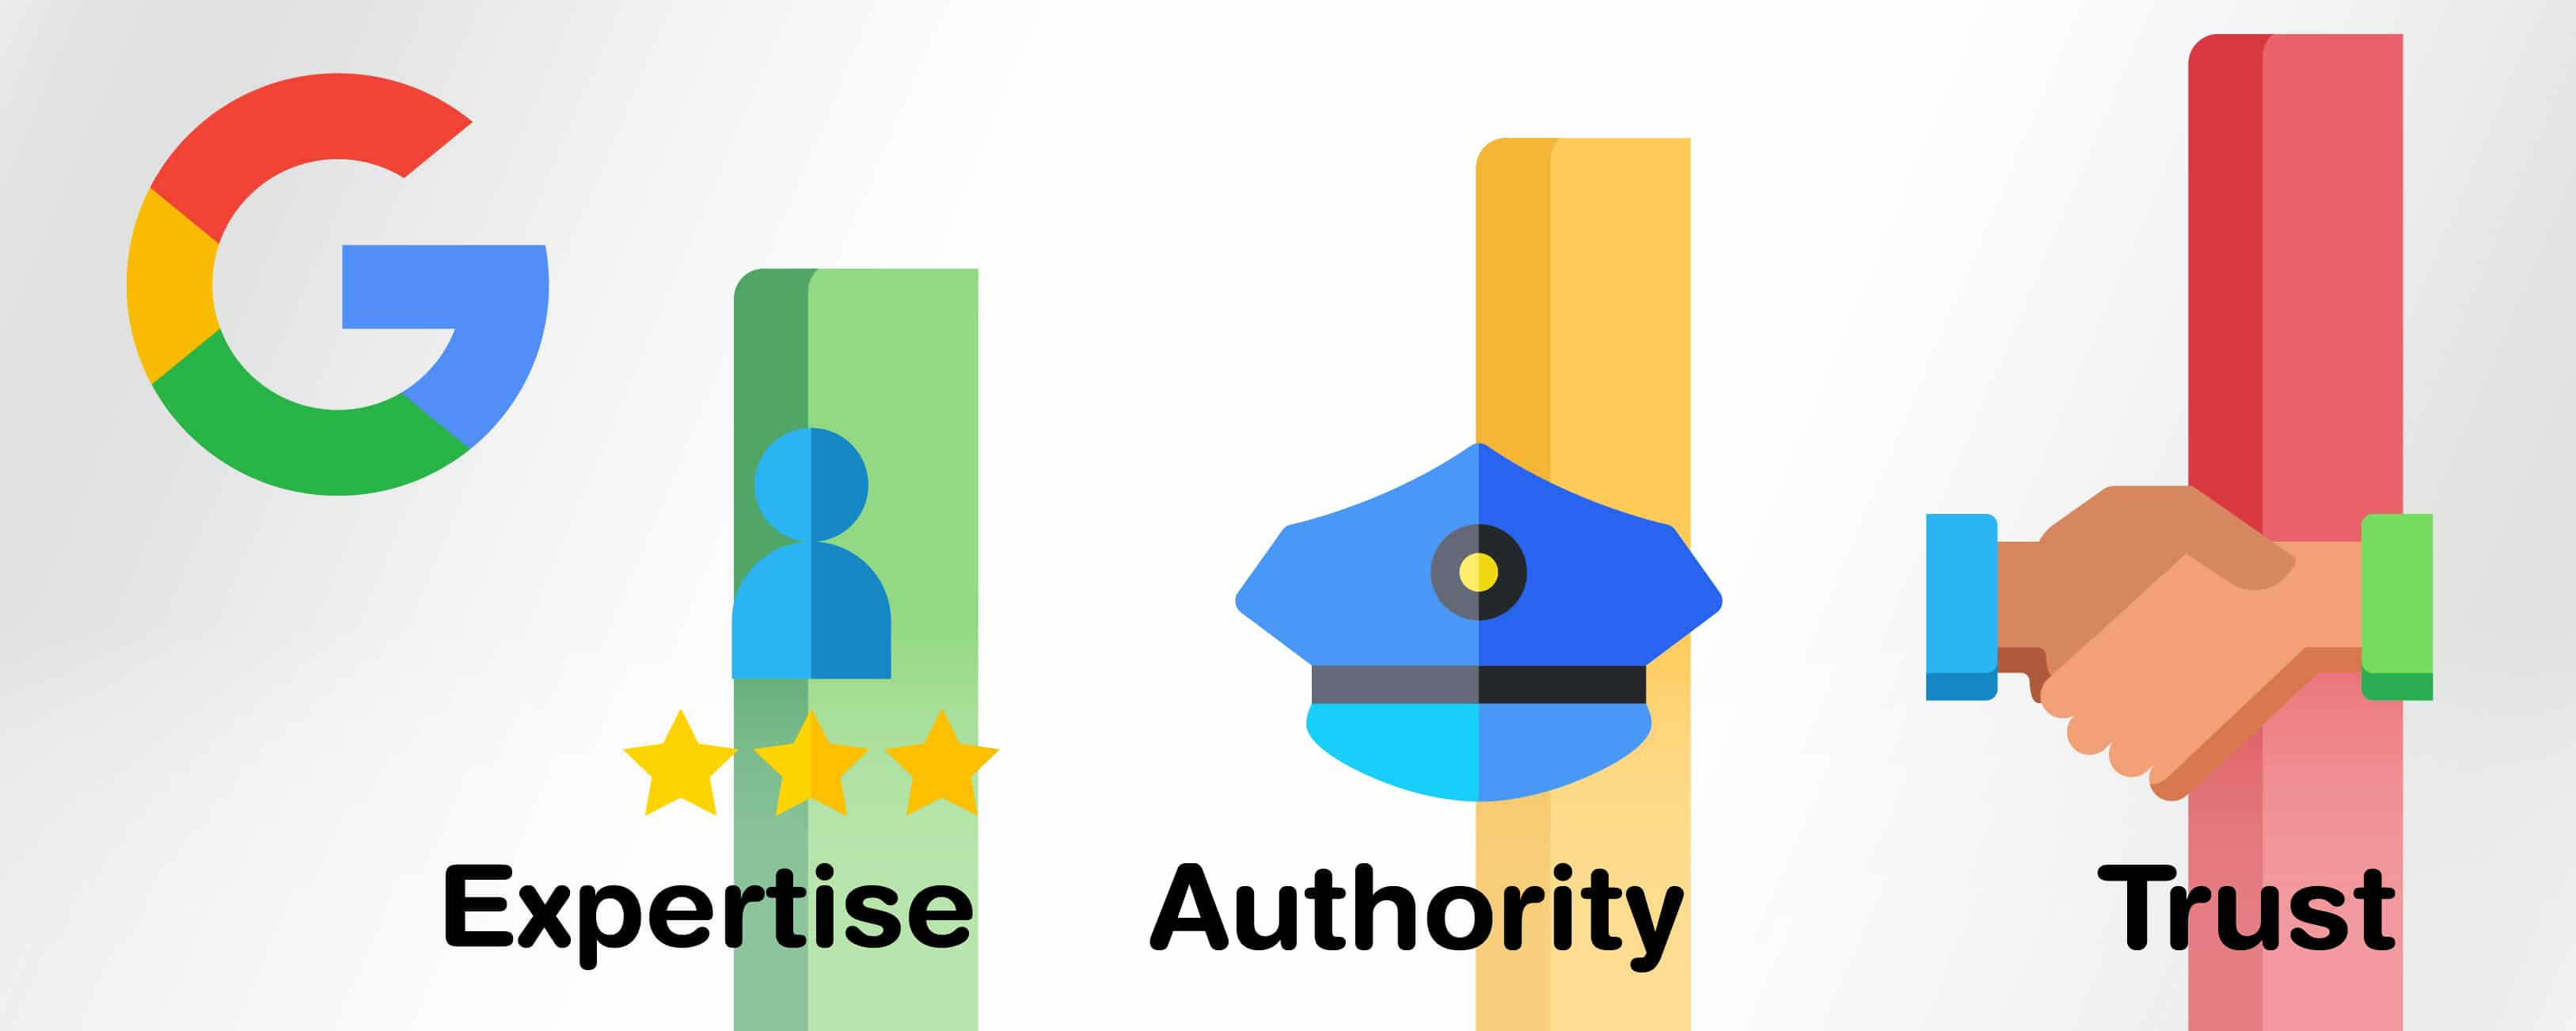 E-A-T chart-expertise, authority, and trust